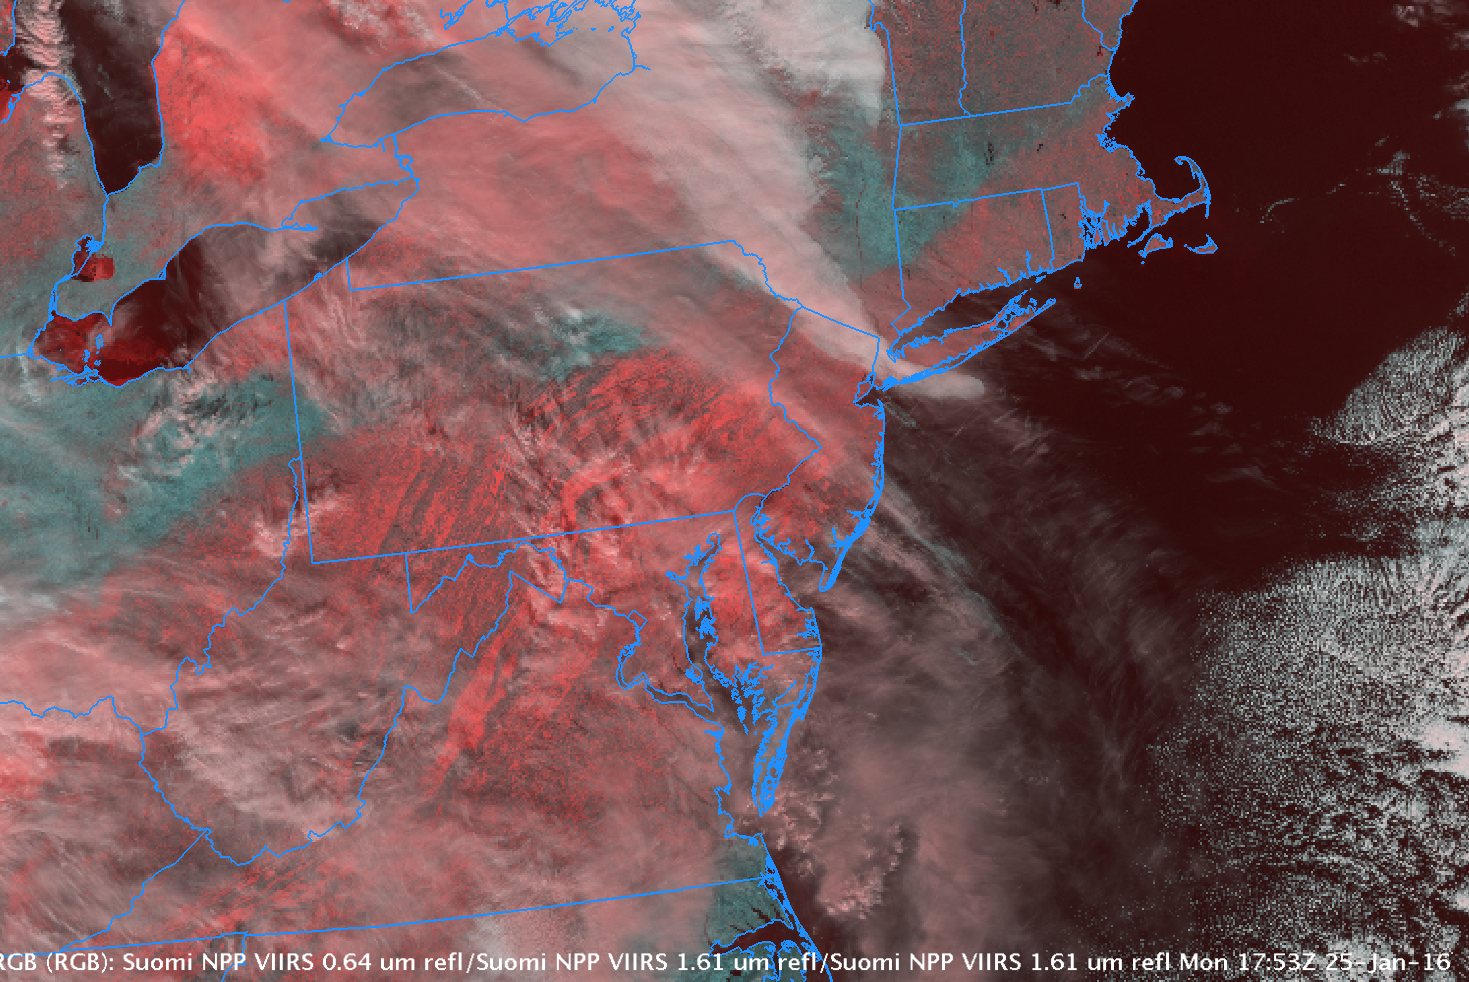 Suomi NPP VIIRS RGB Imagery showing snow/ice features (red), water droplet cloud features (white) and bare ground (cyan), 1753 UTC on 25 January 2016 [click to enlarge]